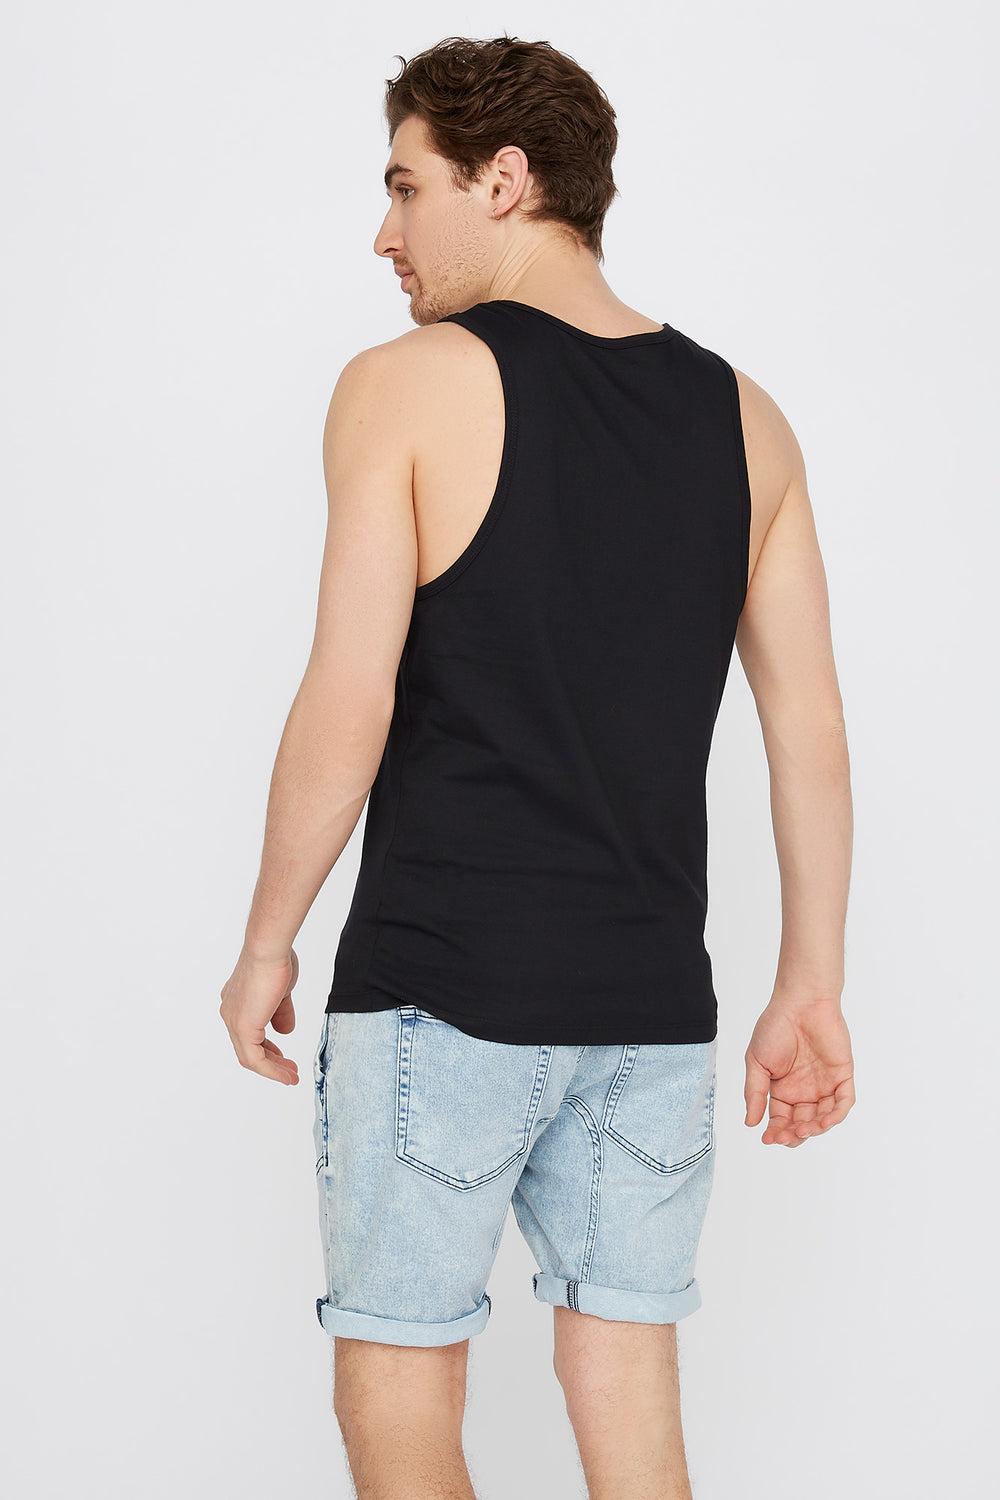 Graphic New York Tank Black